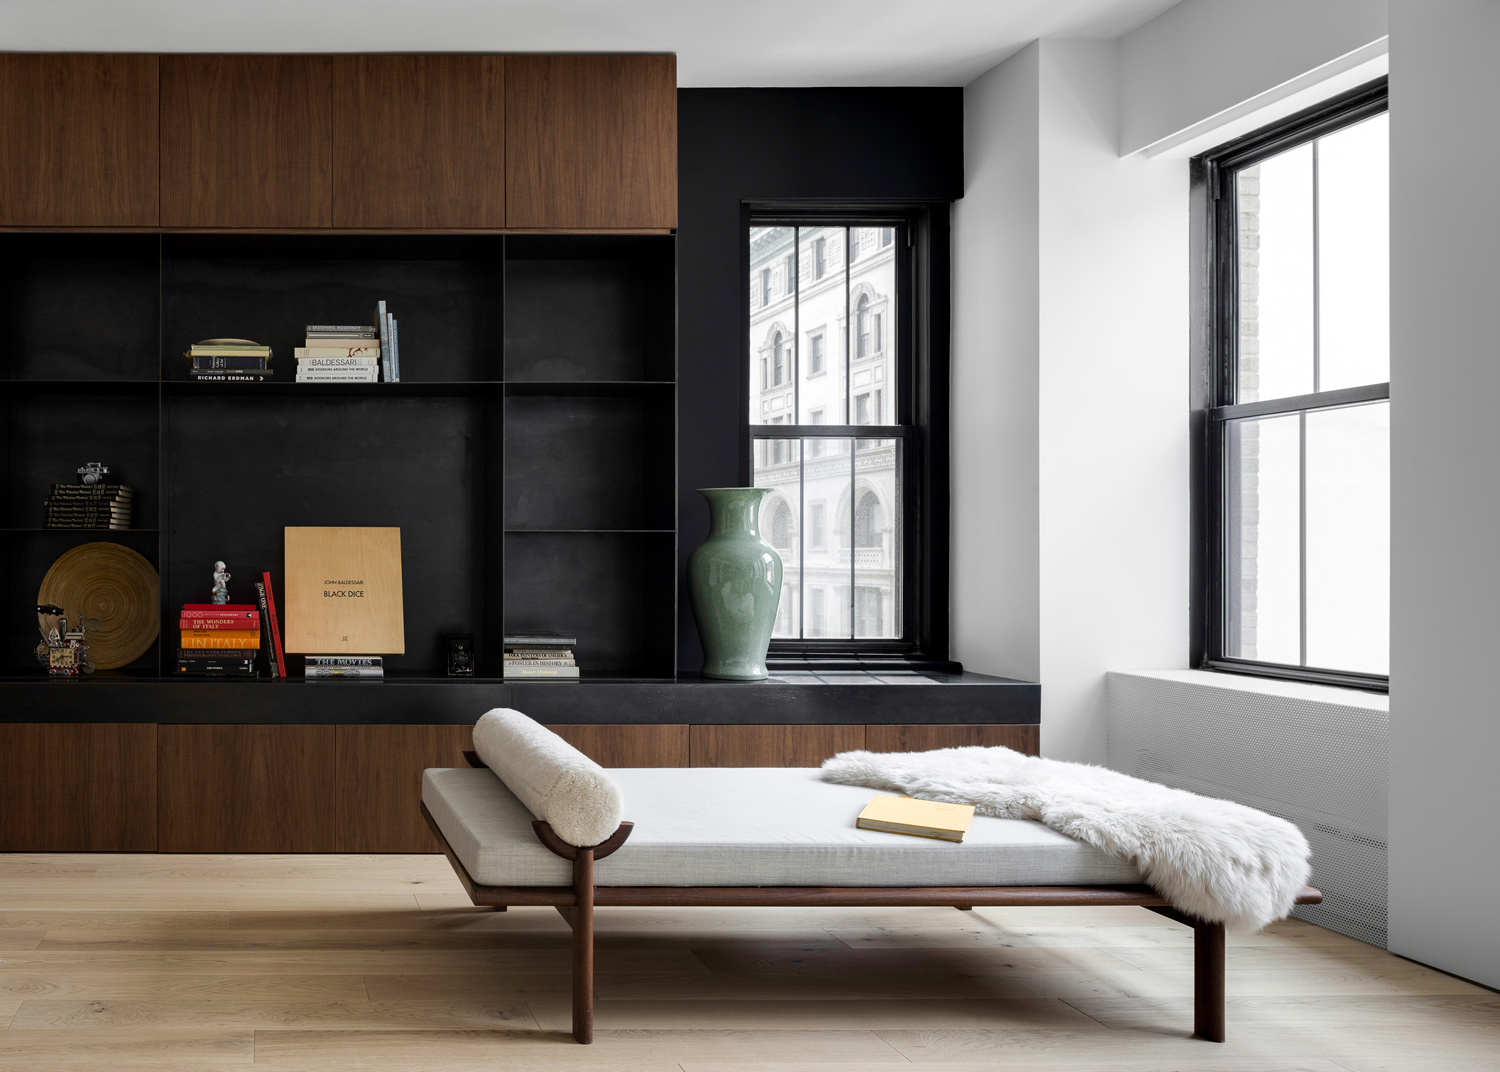 Architectural Photography New York RAAD Studio Built-in